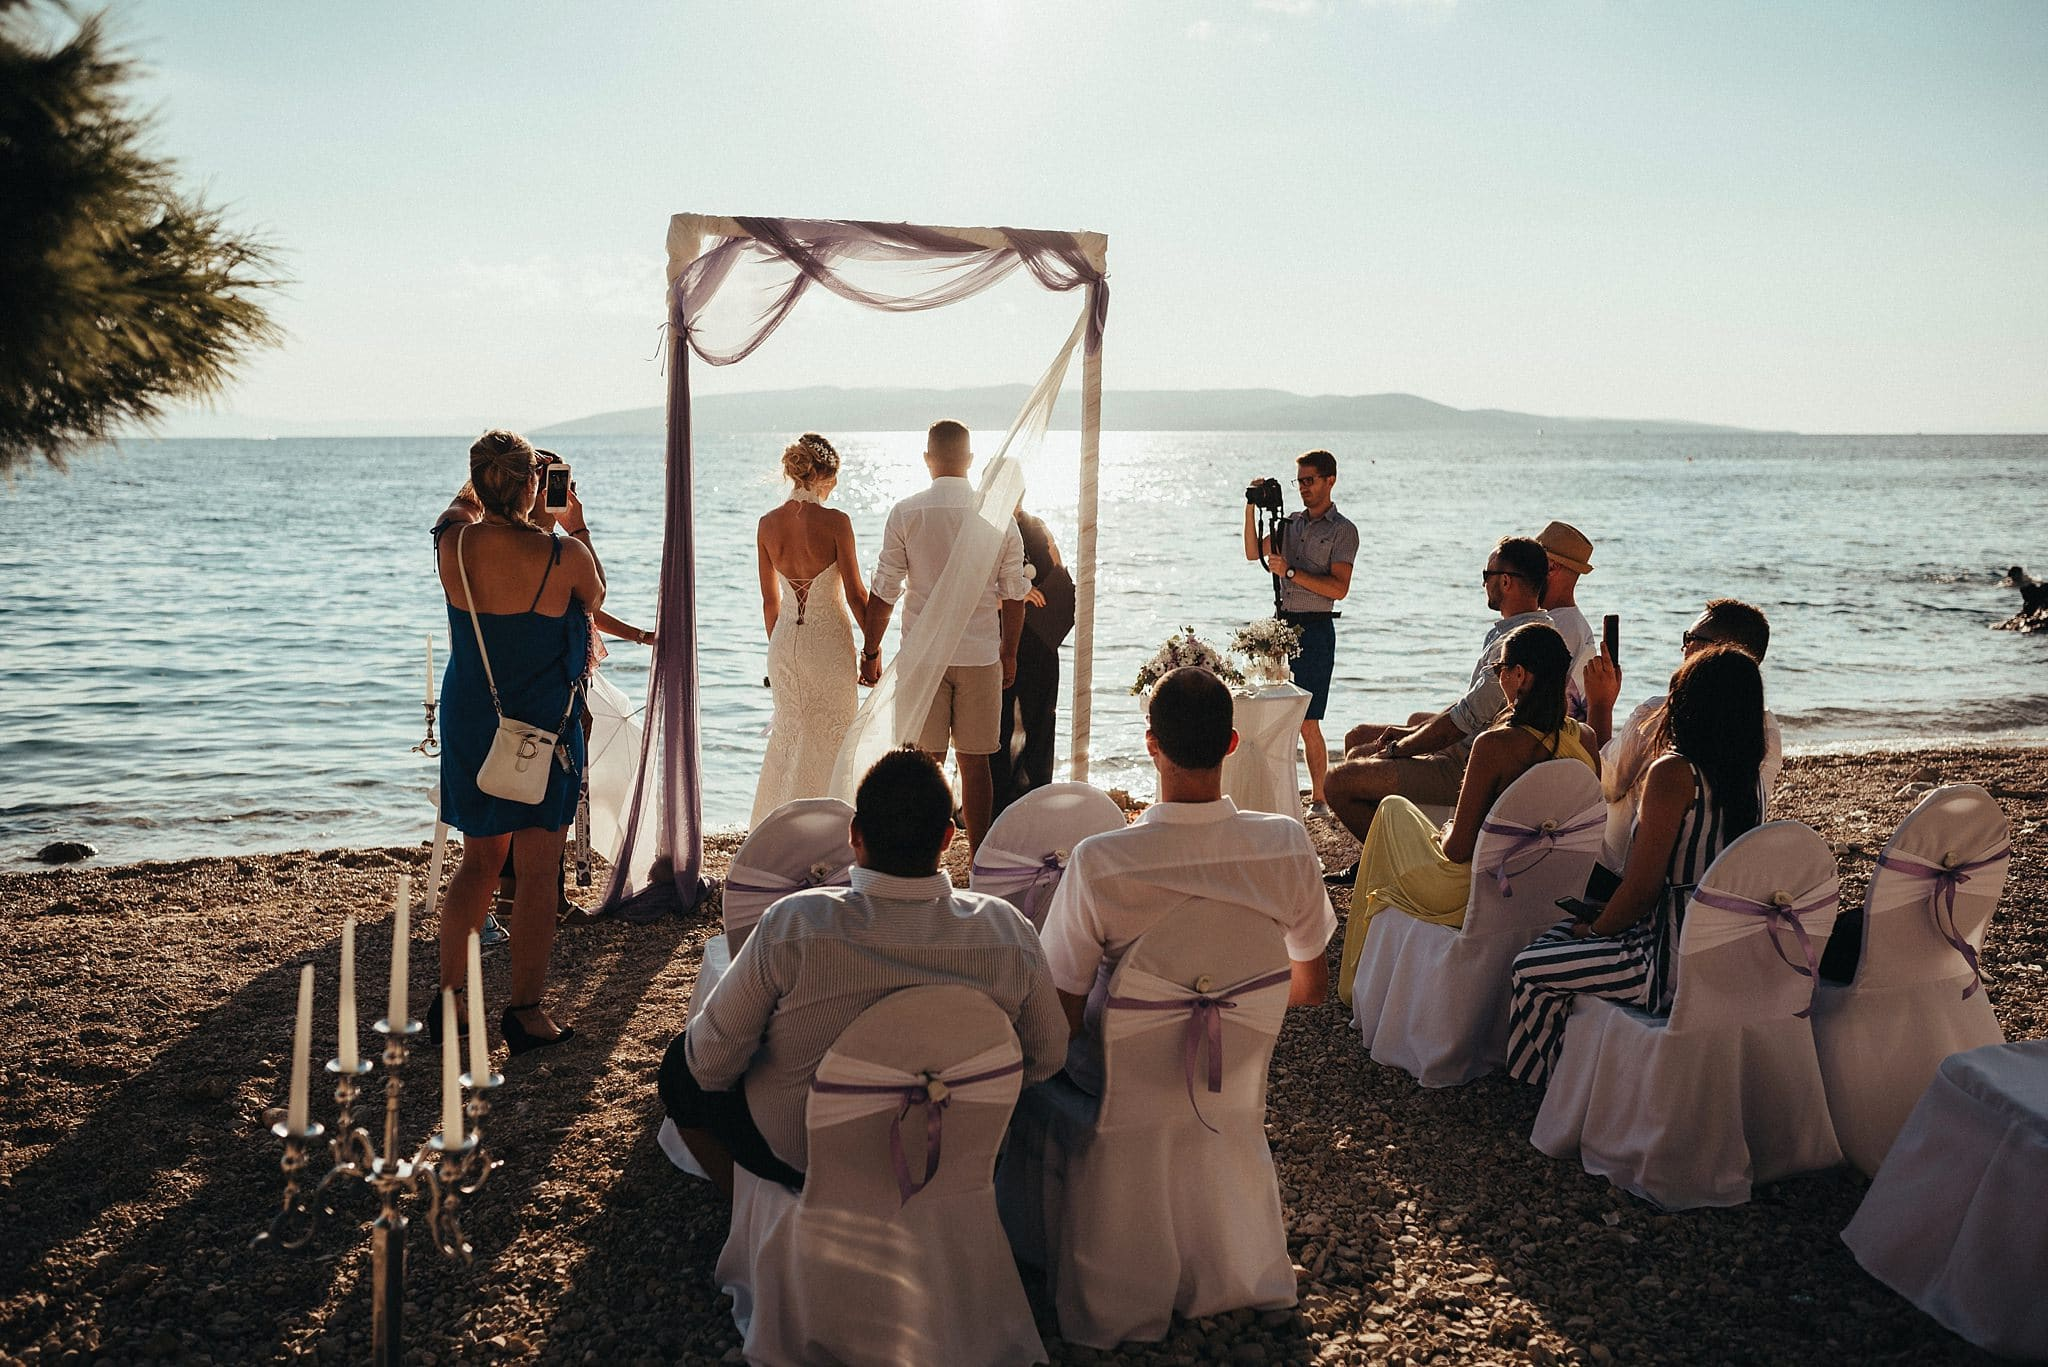 Wedding in Dalmatia